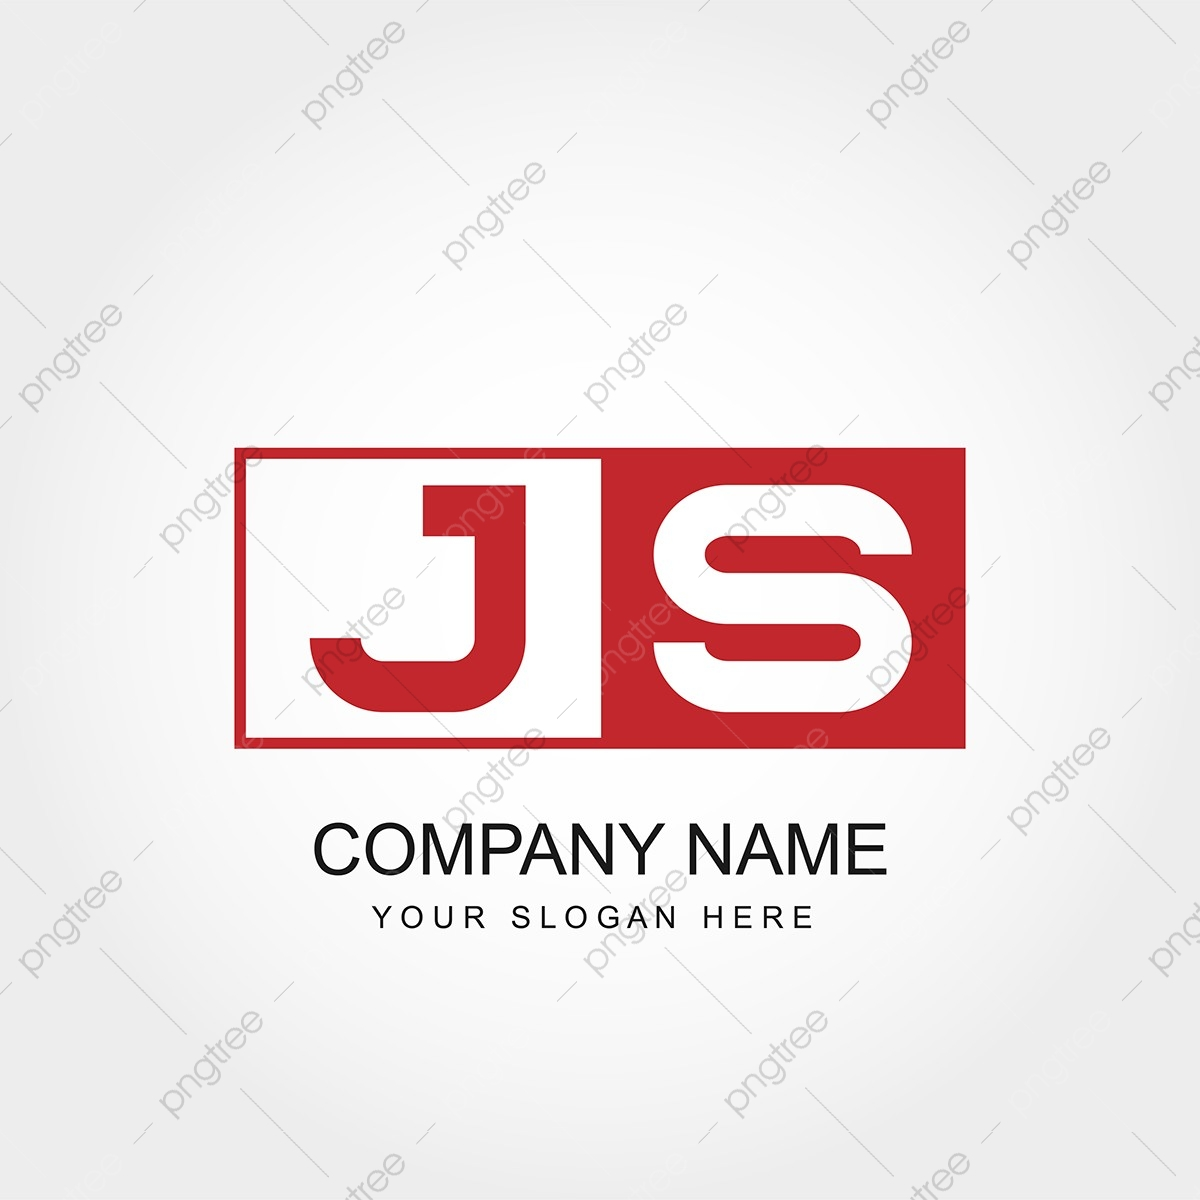 Js Logo Png Images Vector And Psd Files Free Download On Pngtree